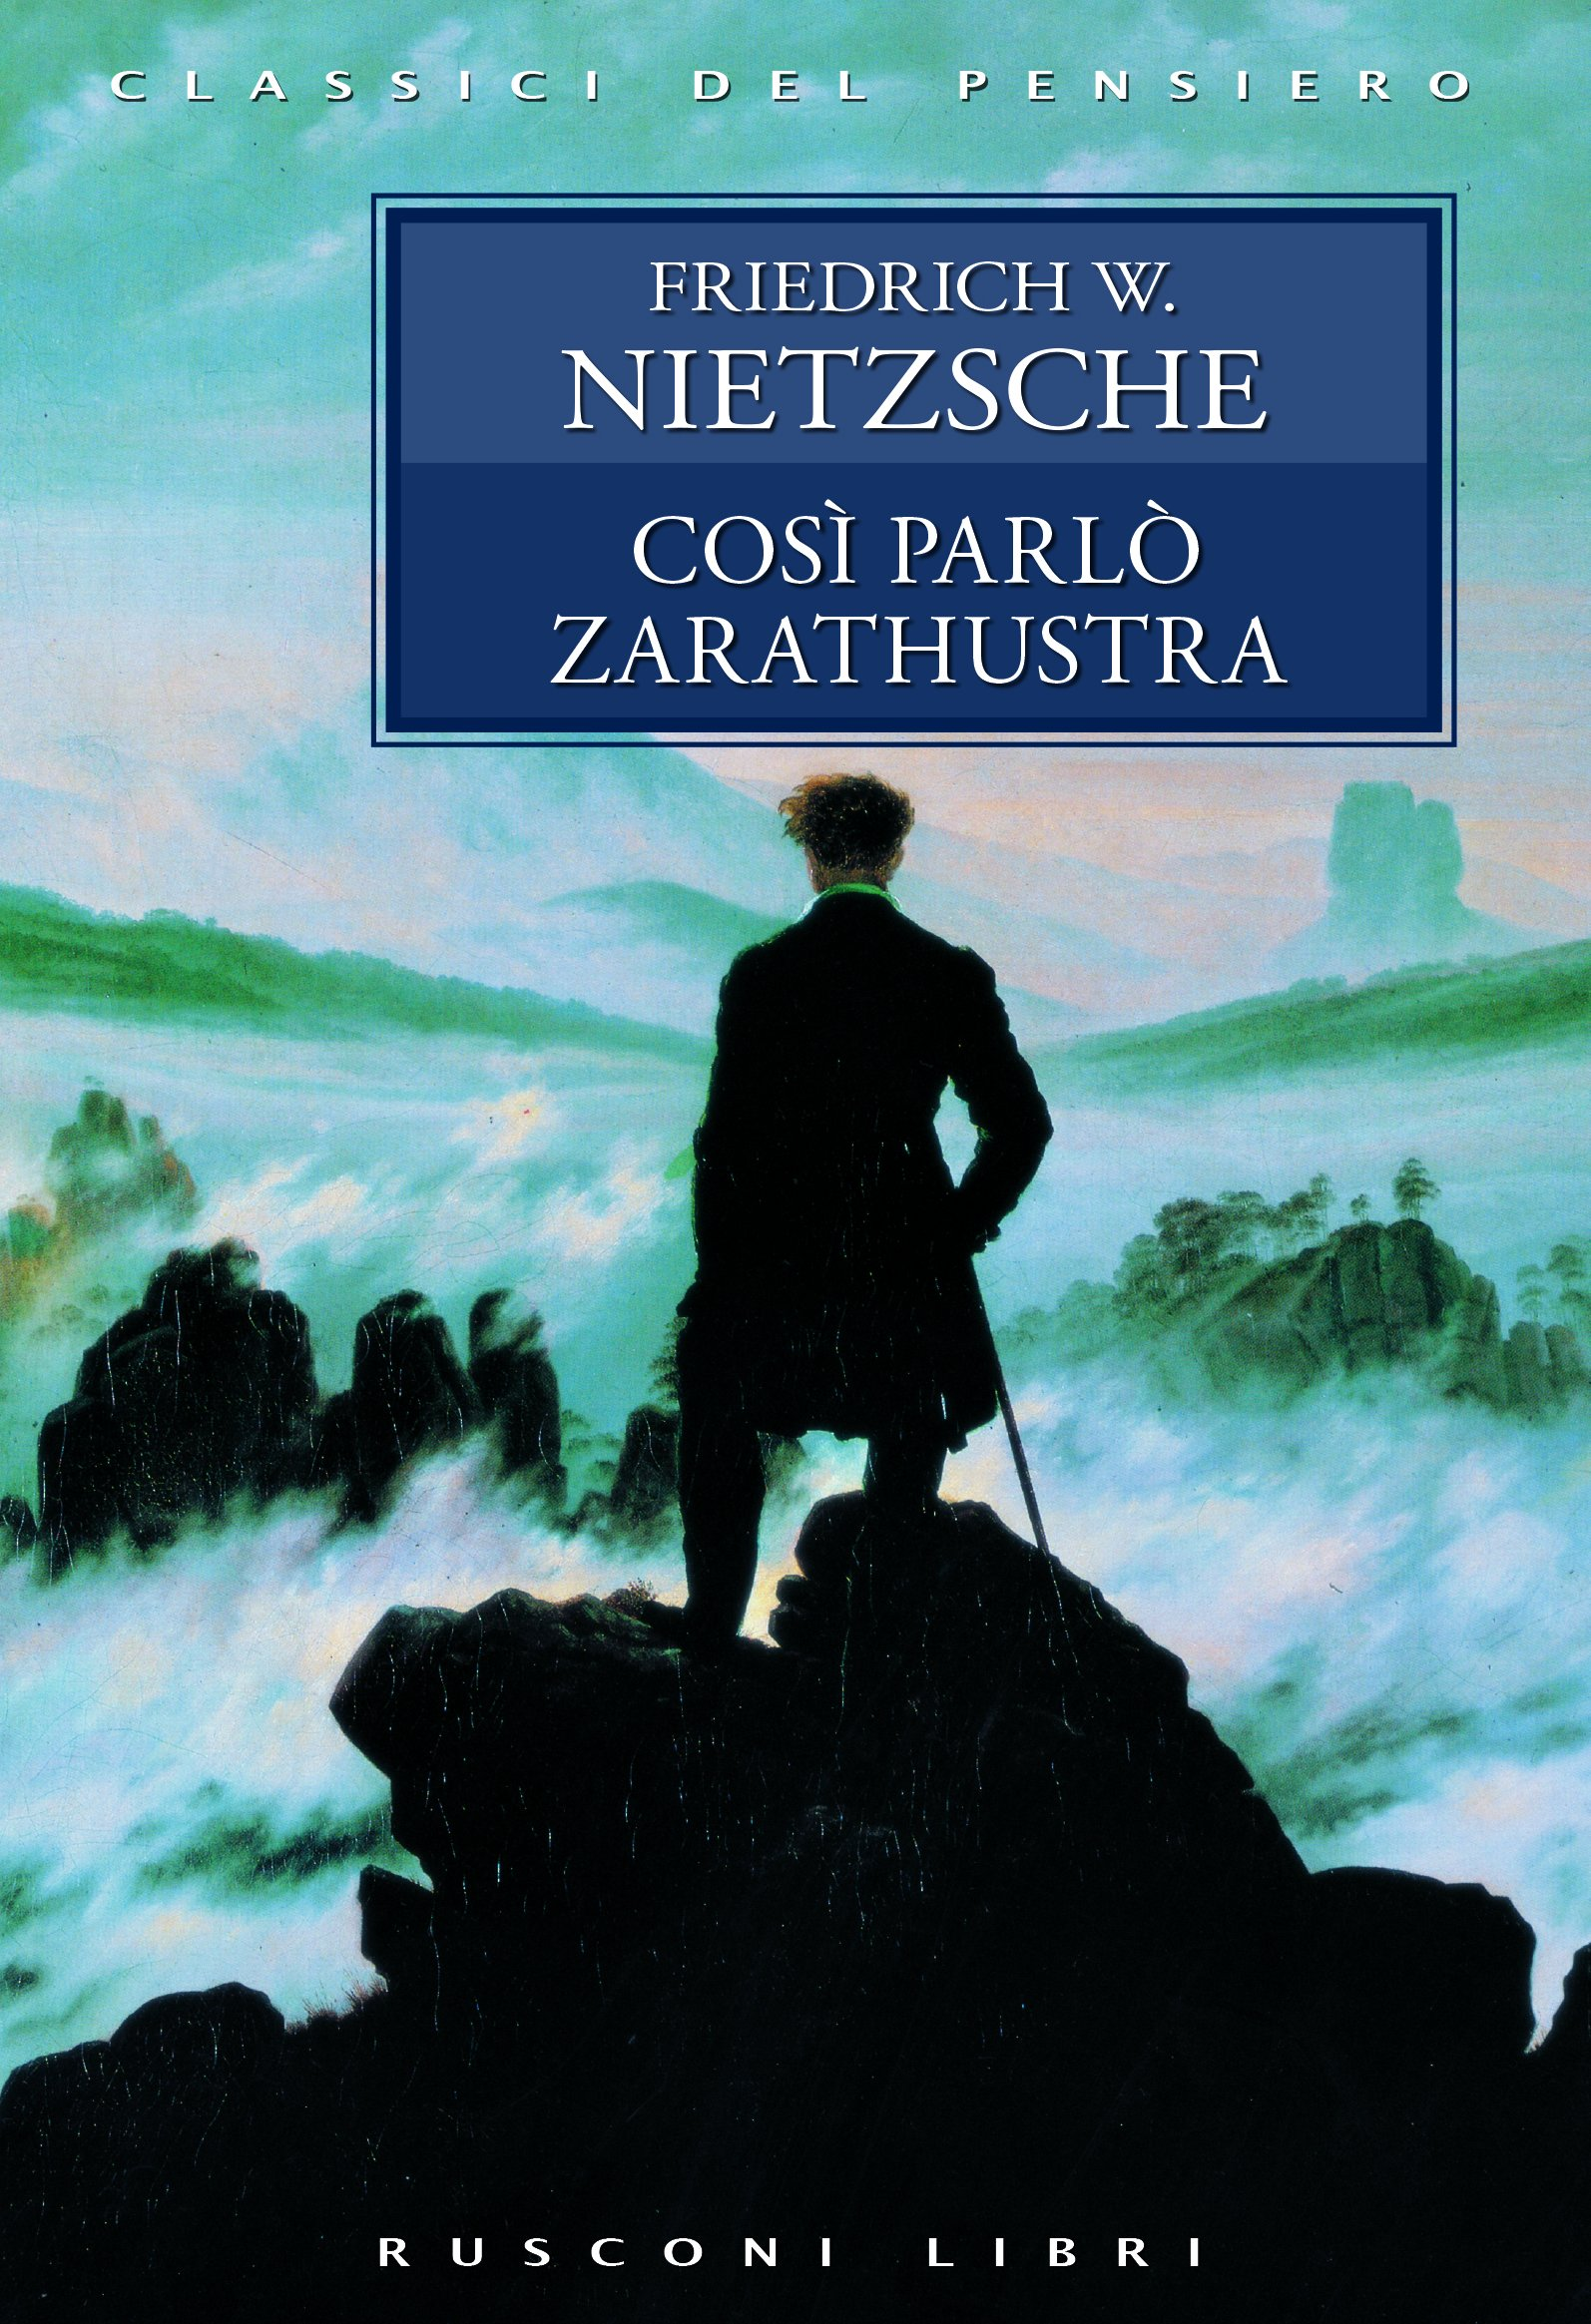 Amazon.it: Così parlò Zarathustra Nietzsche, Friedrich